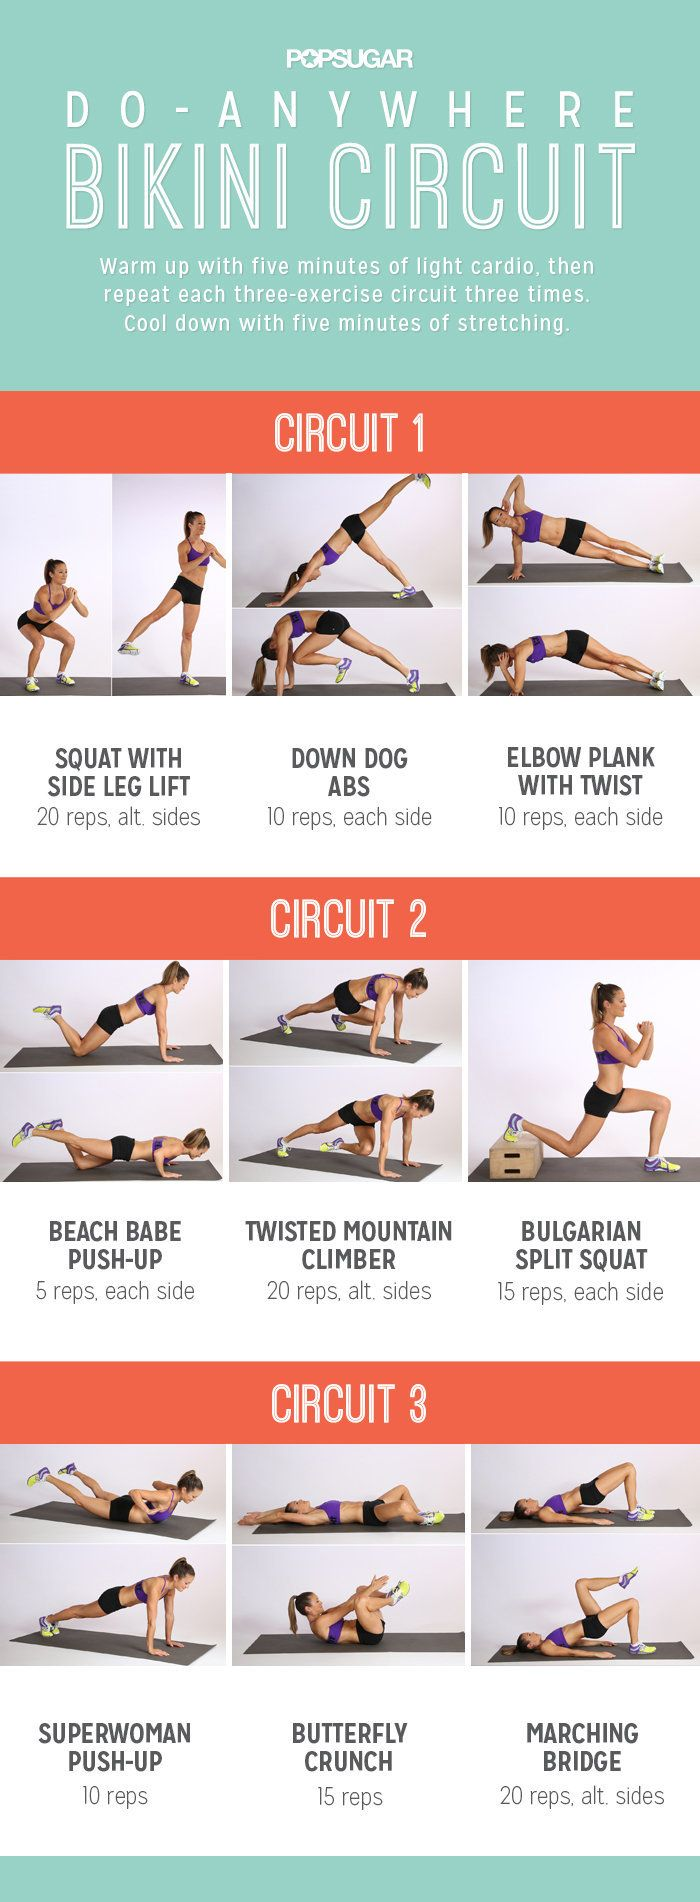 It's time to get stronger and tone up all over. No matter what your Summer goals are, we have a monthlong workout plan to help achieve them. Our Better-Body Challenge will help you conquer burpees and rock your bikini. Bikini prep circuit.